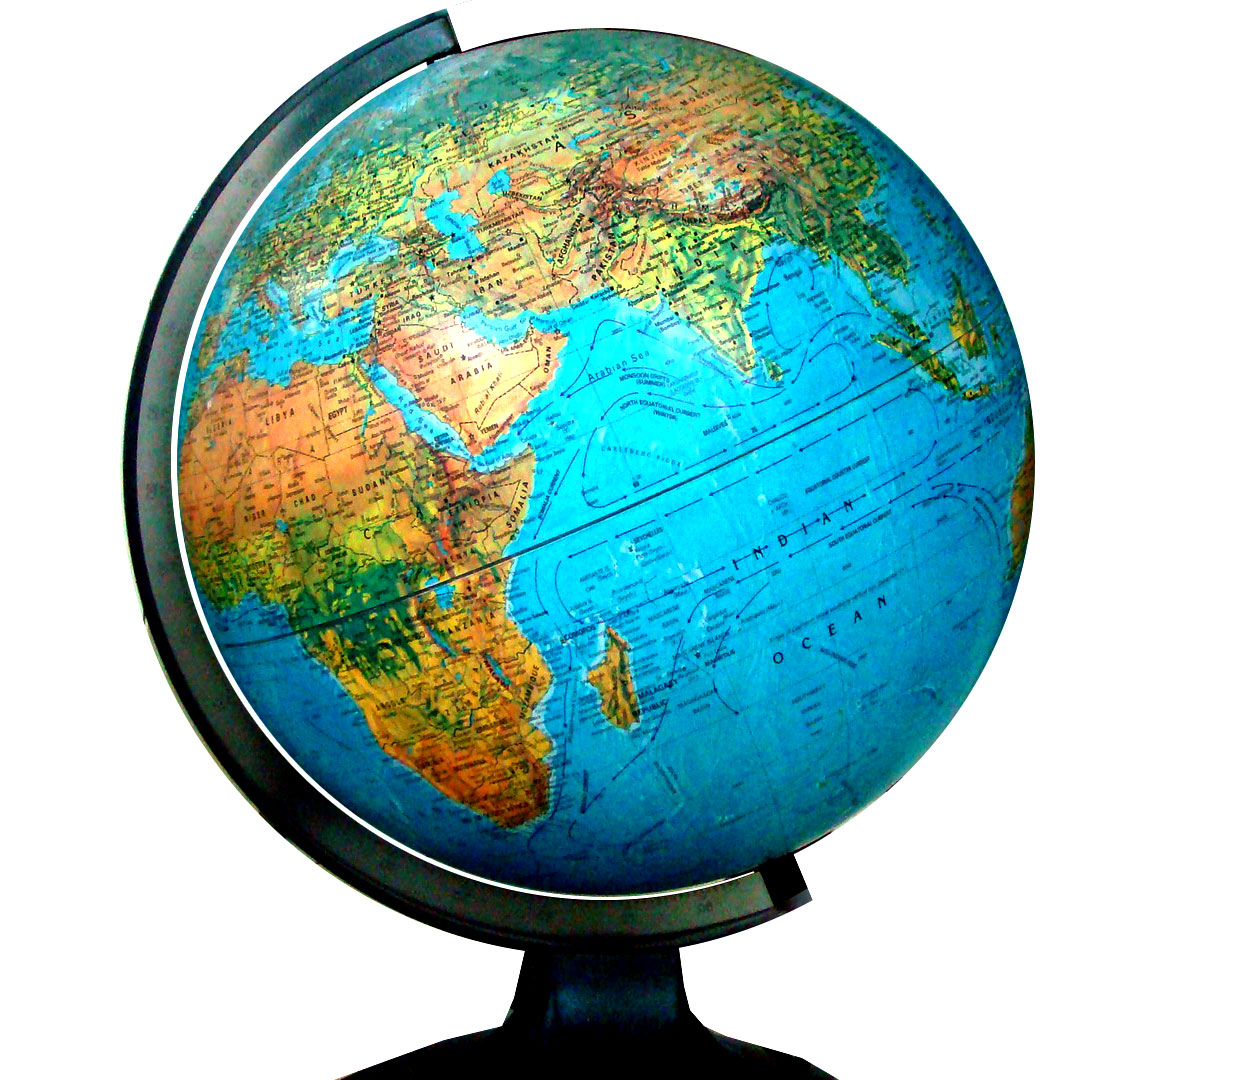 Free Picture Of A Globe, Download Free Clip Art, Free Clip Art on.